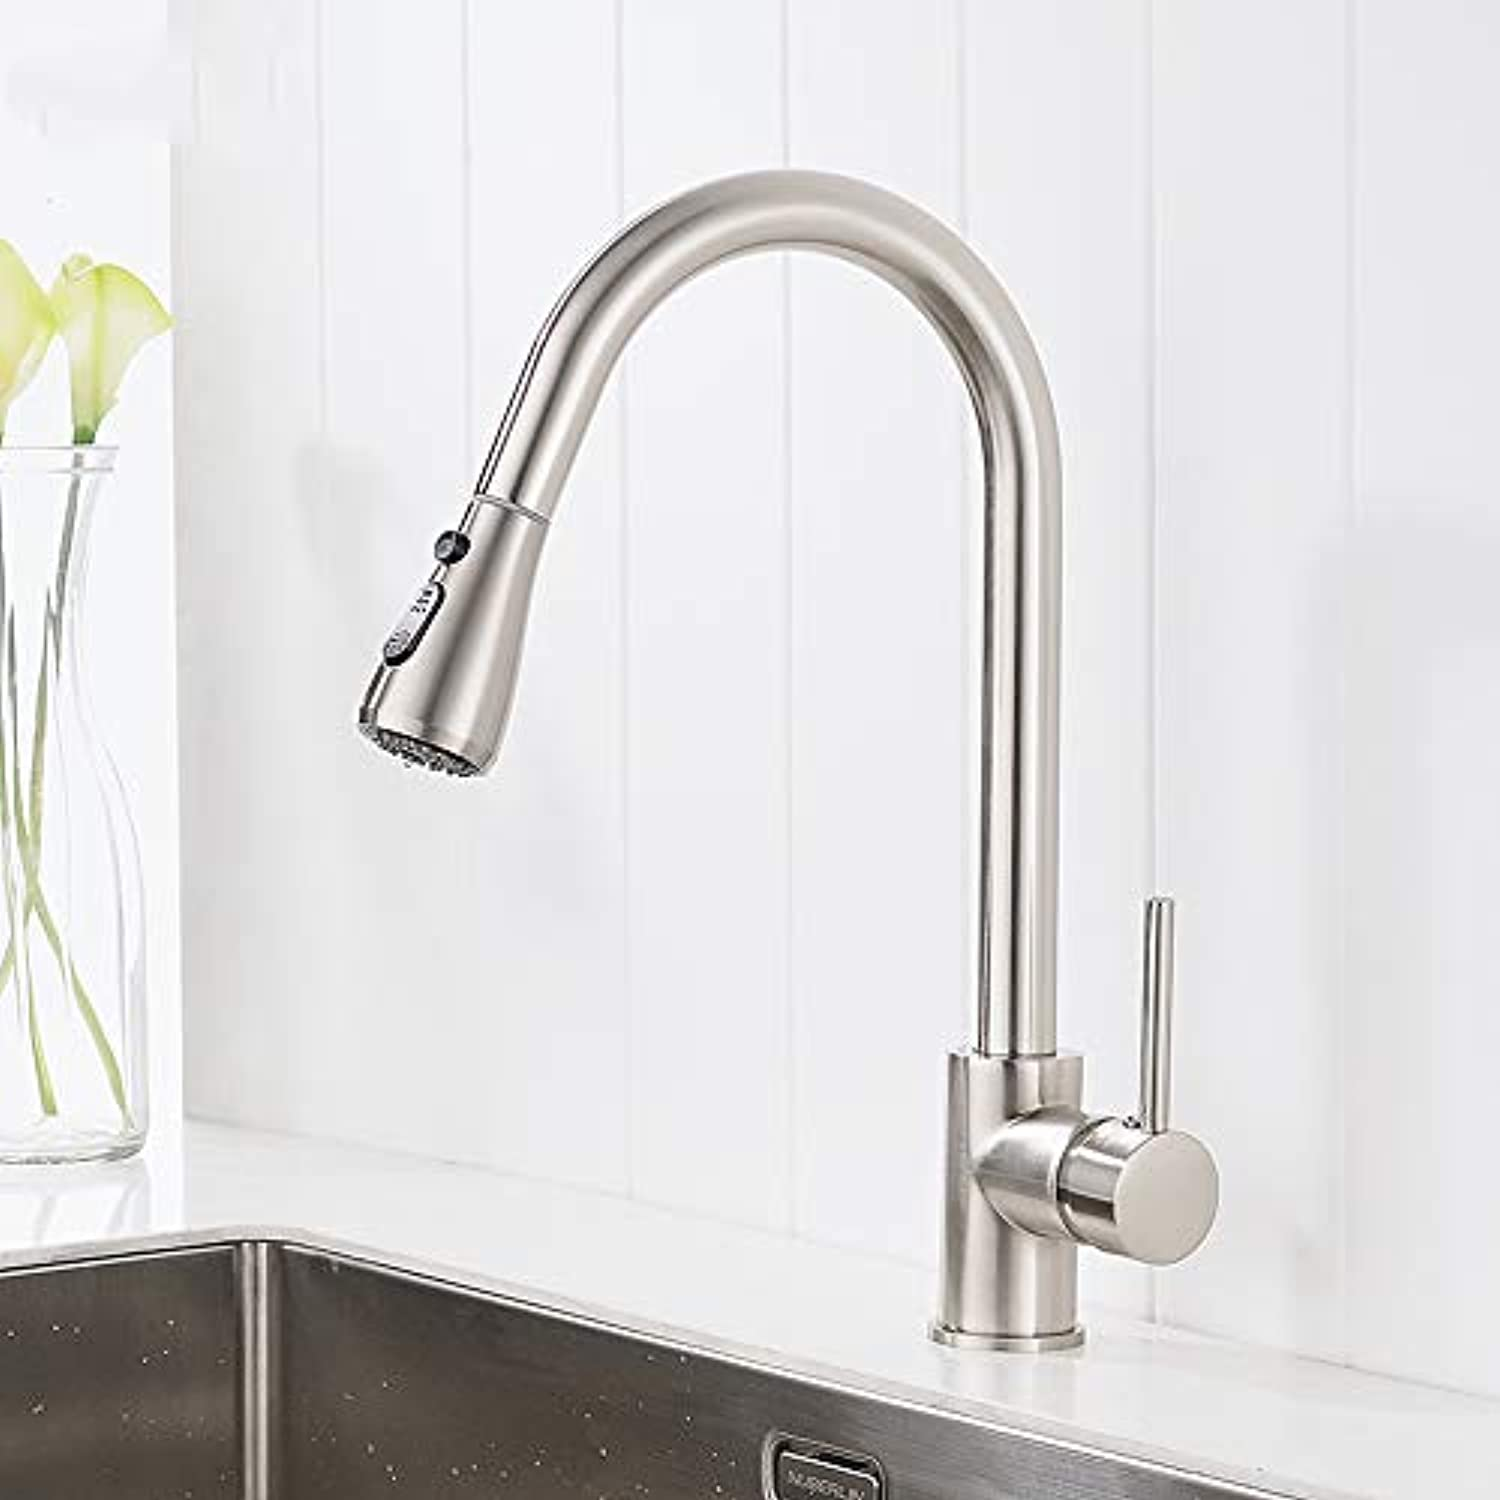 Küchen-Wasserhahn Single Handle Kitchen Faucet Mixer Pull Out Kitchen Tap Single Hole Water Tap Cold And Hot Water Mixer